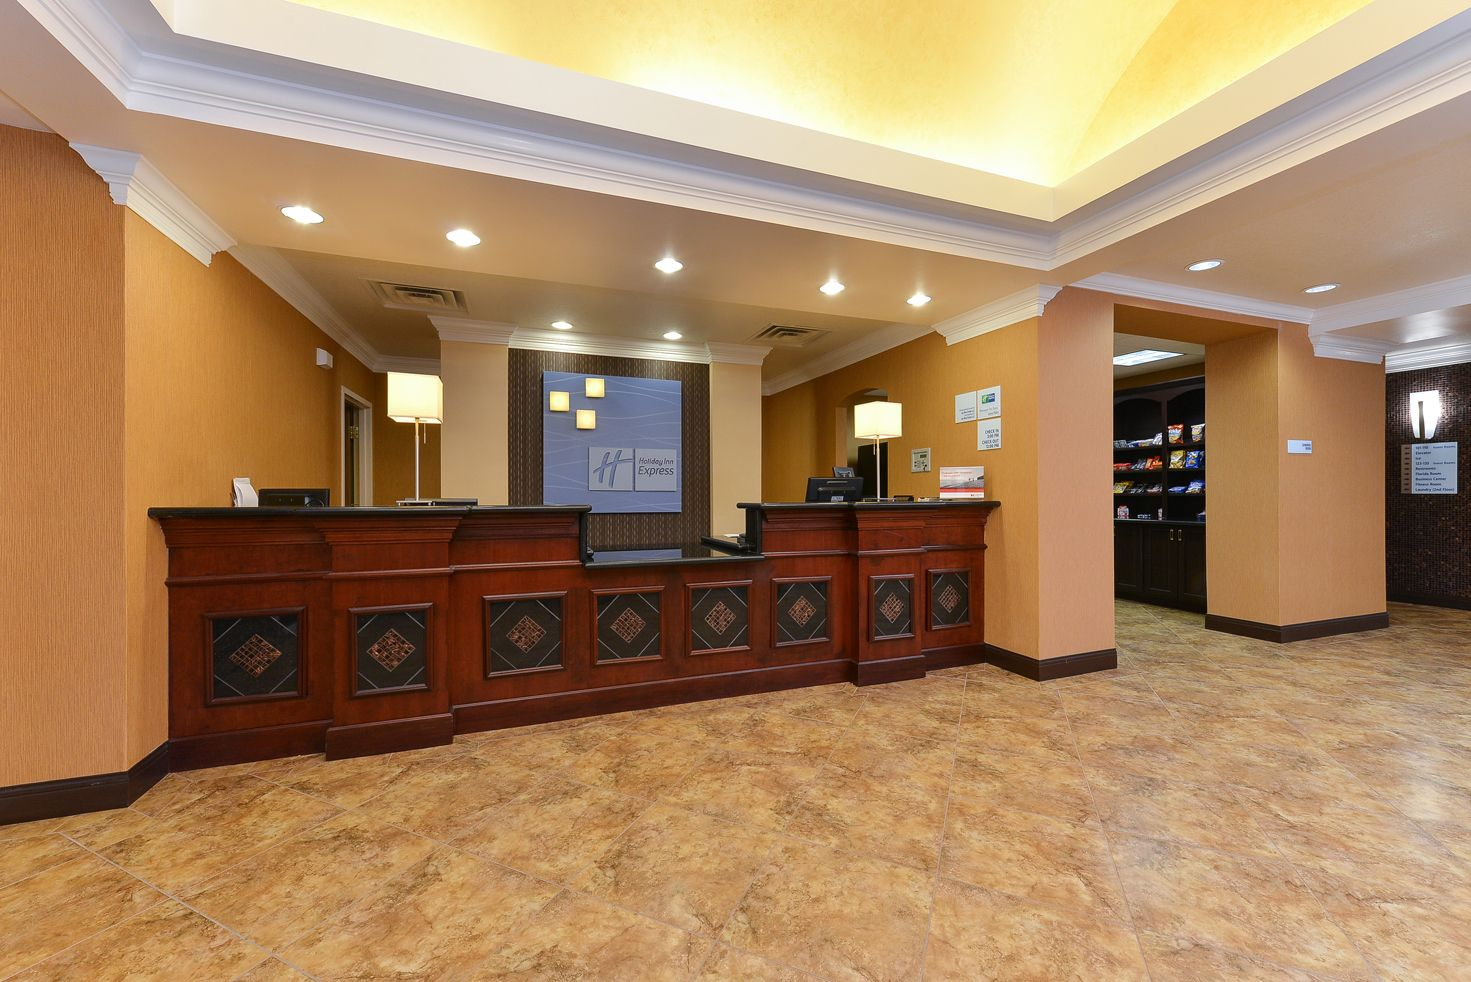 Holiday Inn Express & Suites Palm Coast - Flagler Bch Area image 3